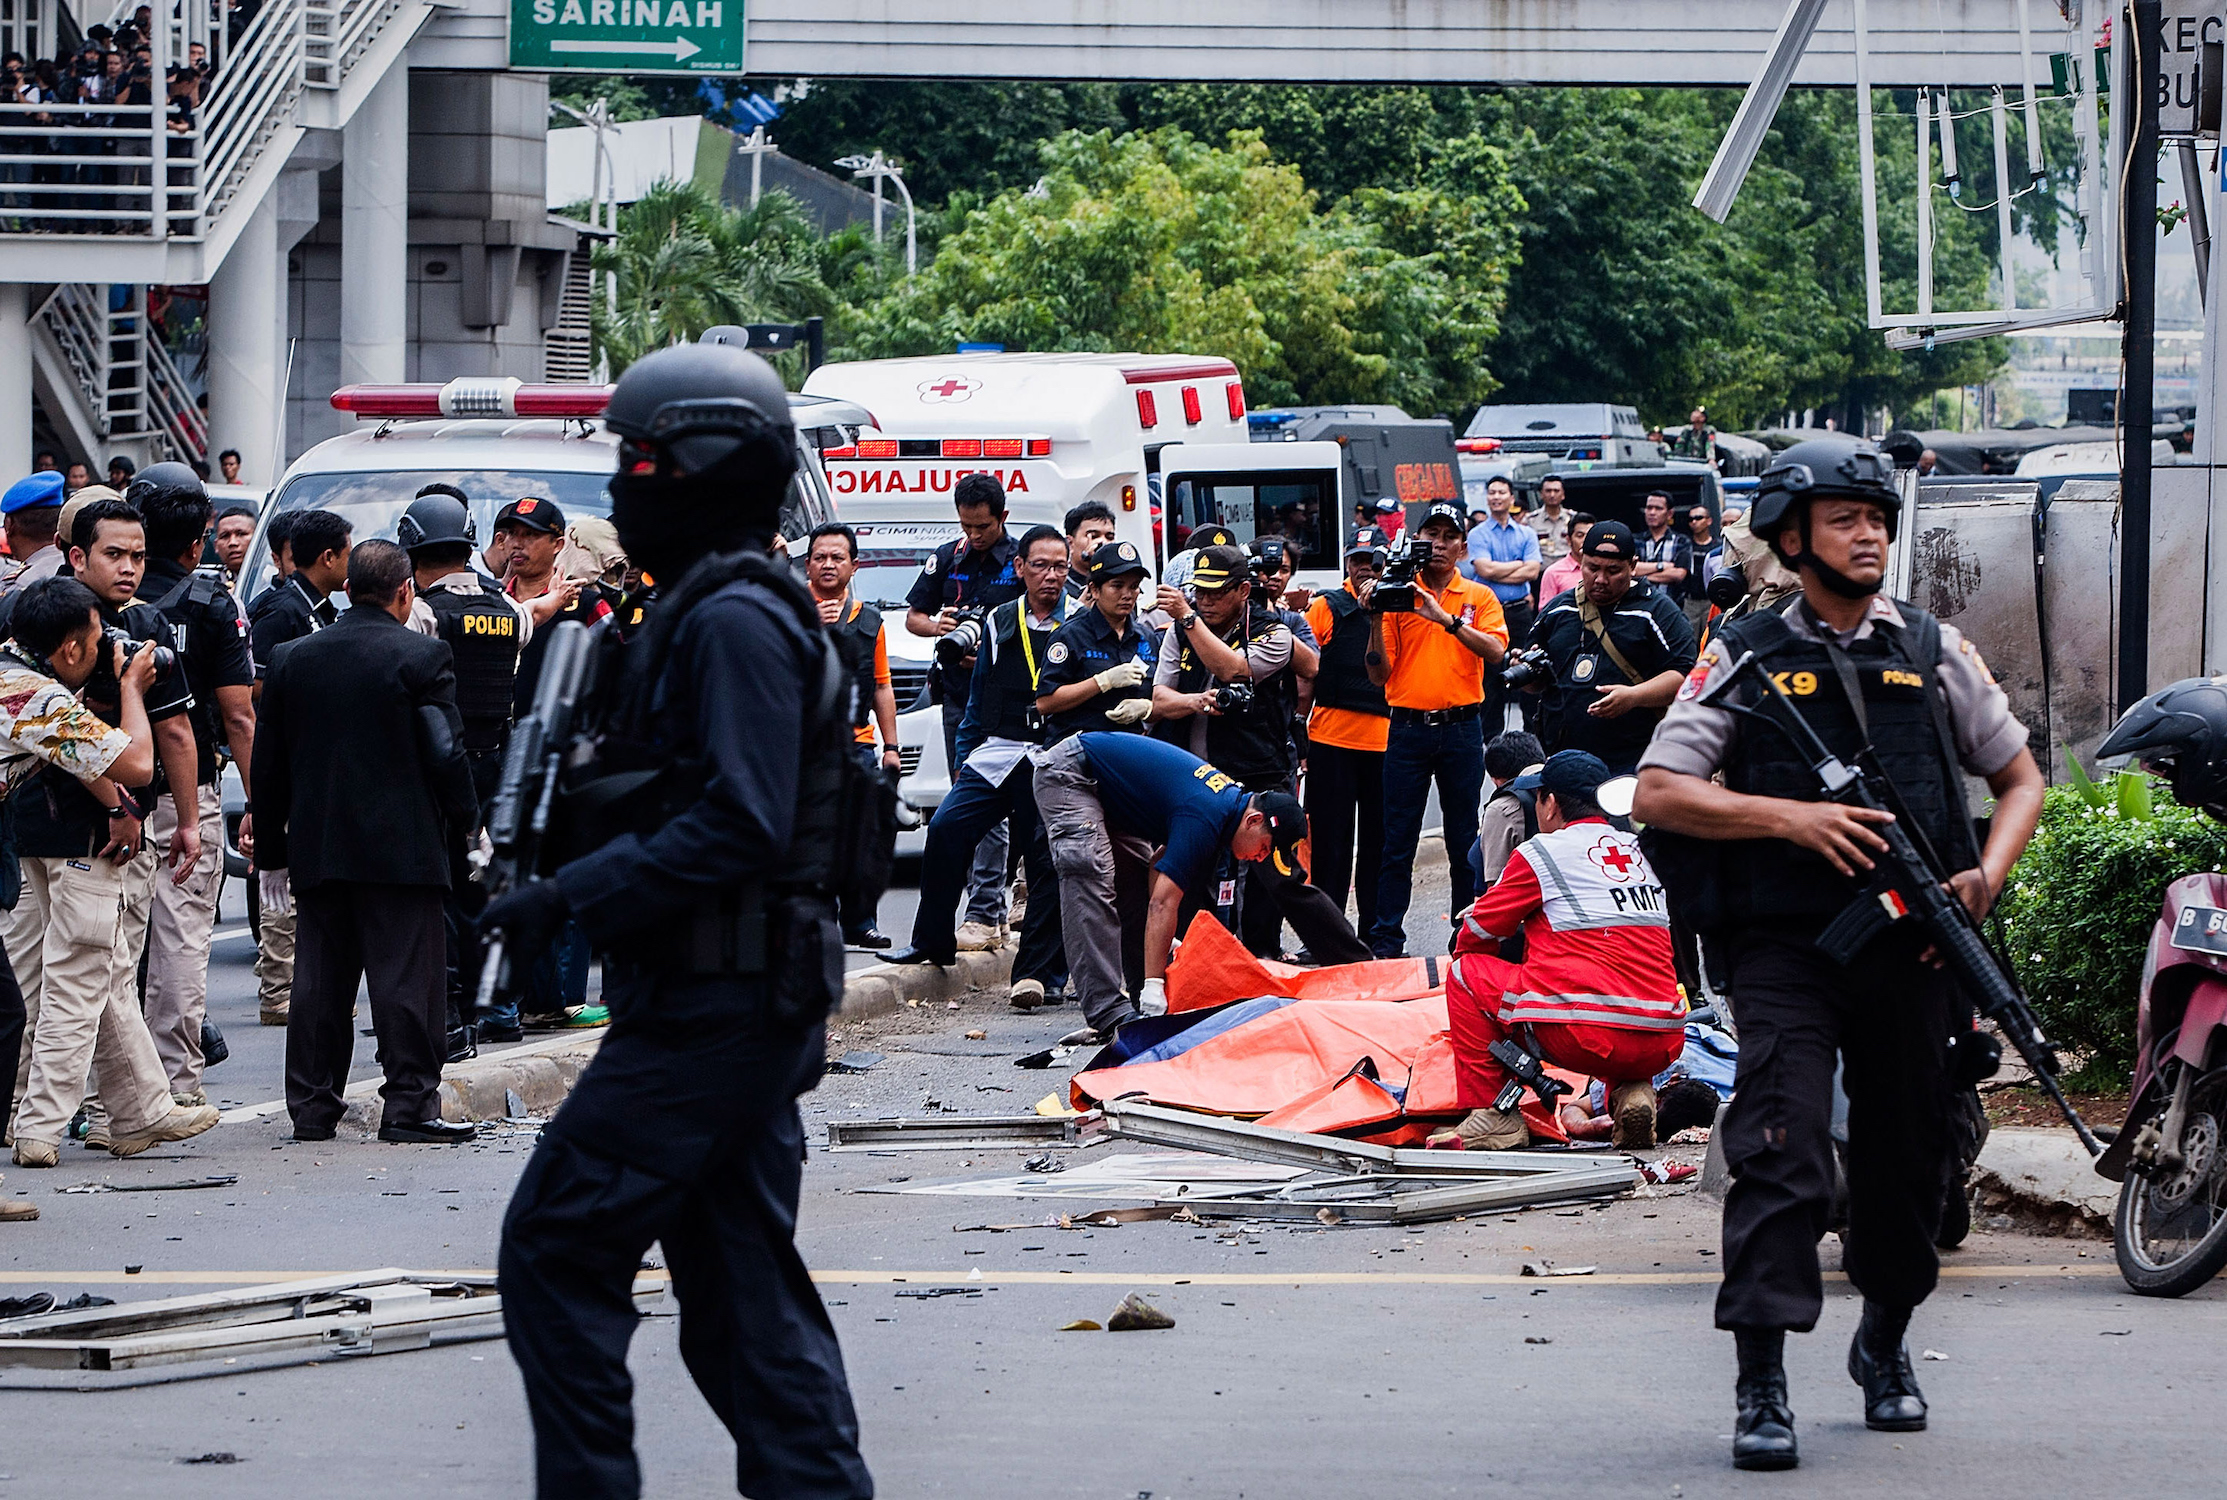 Police in Indonesia on guard after a terrorist attack in Jakarta